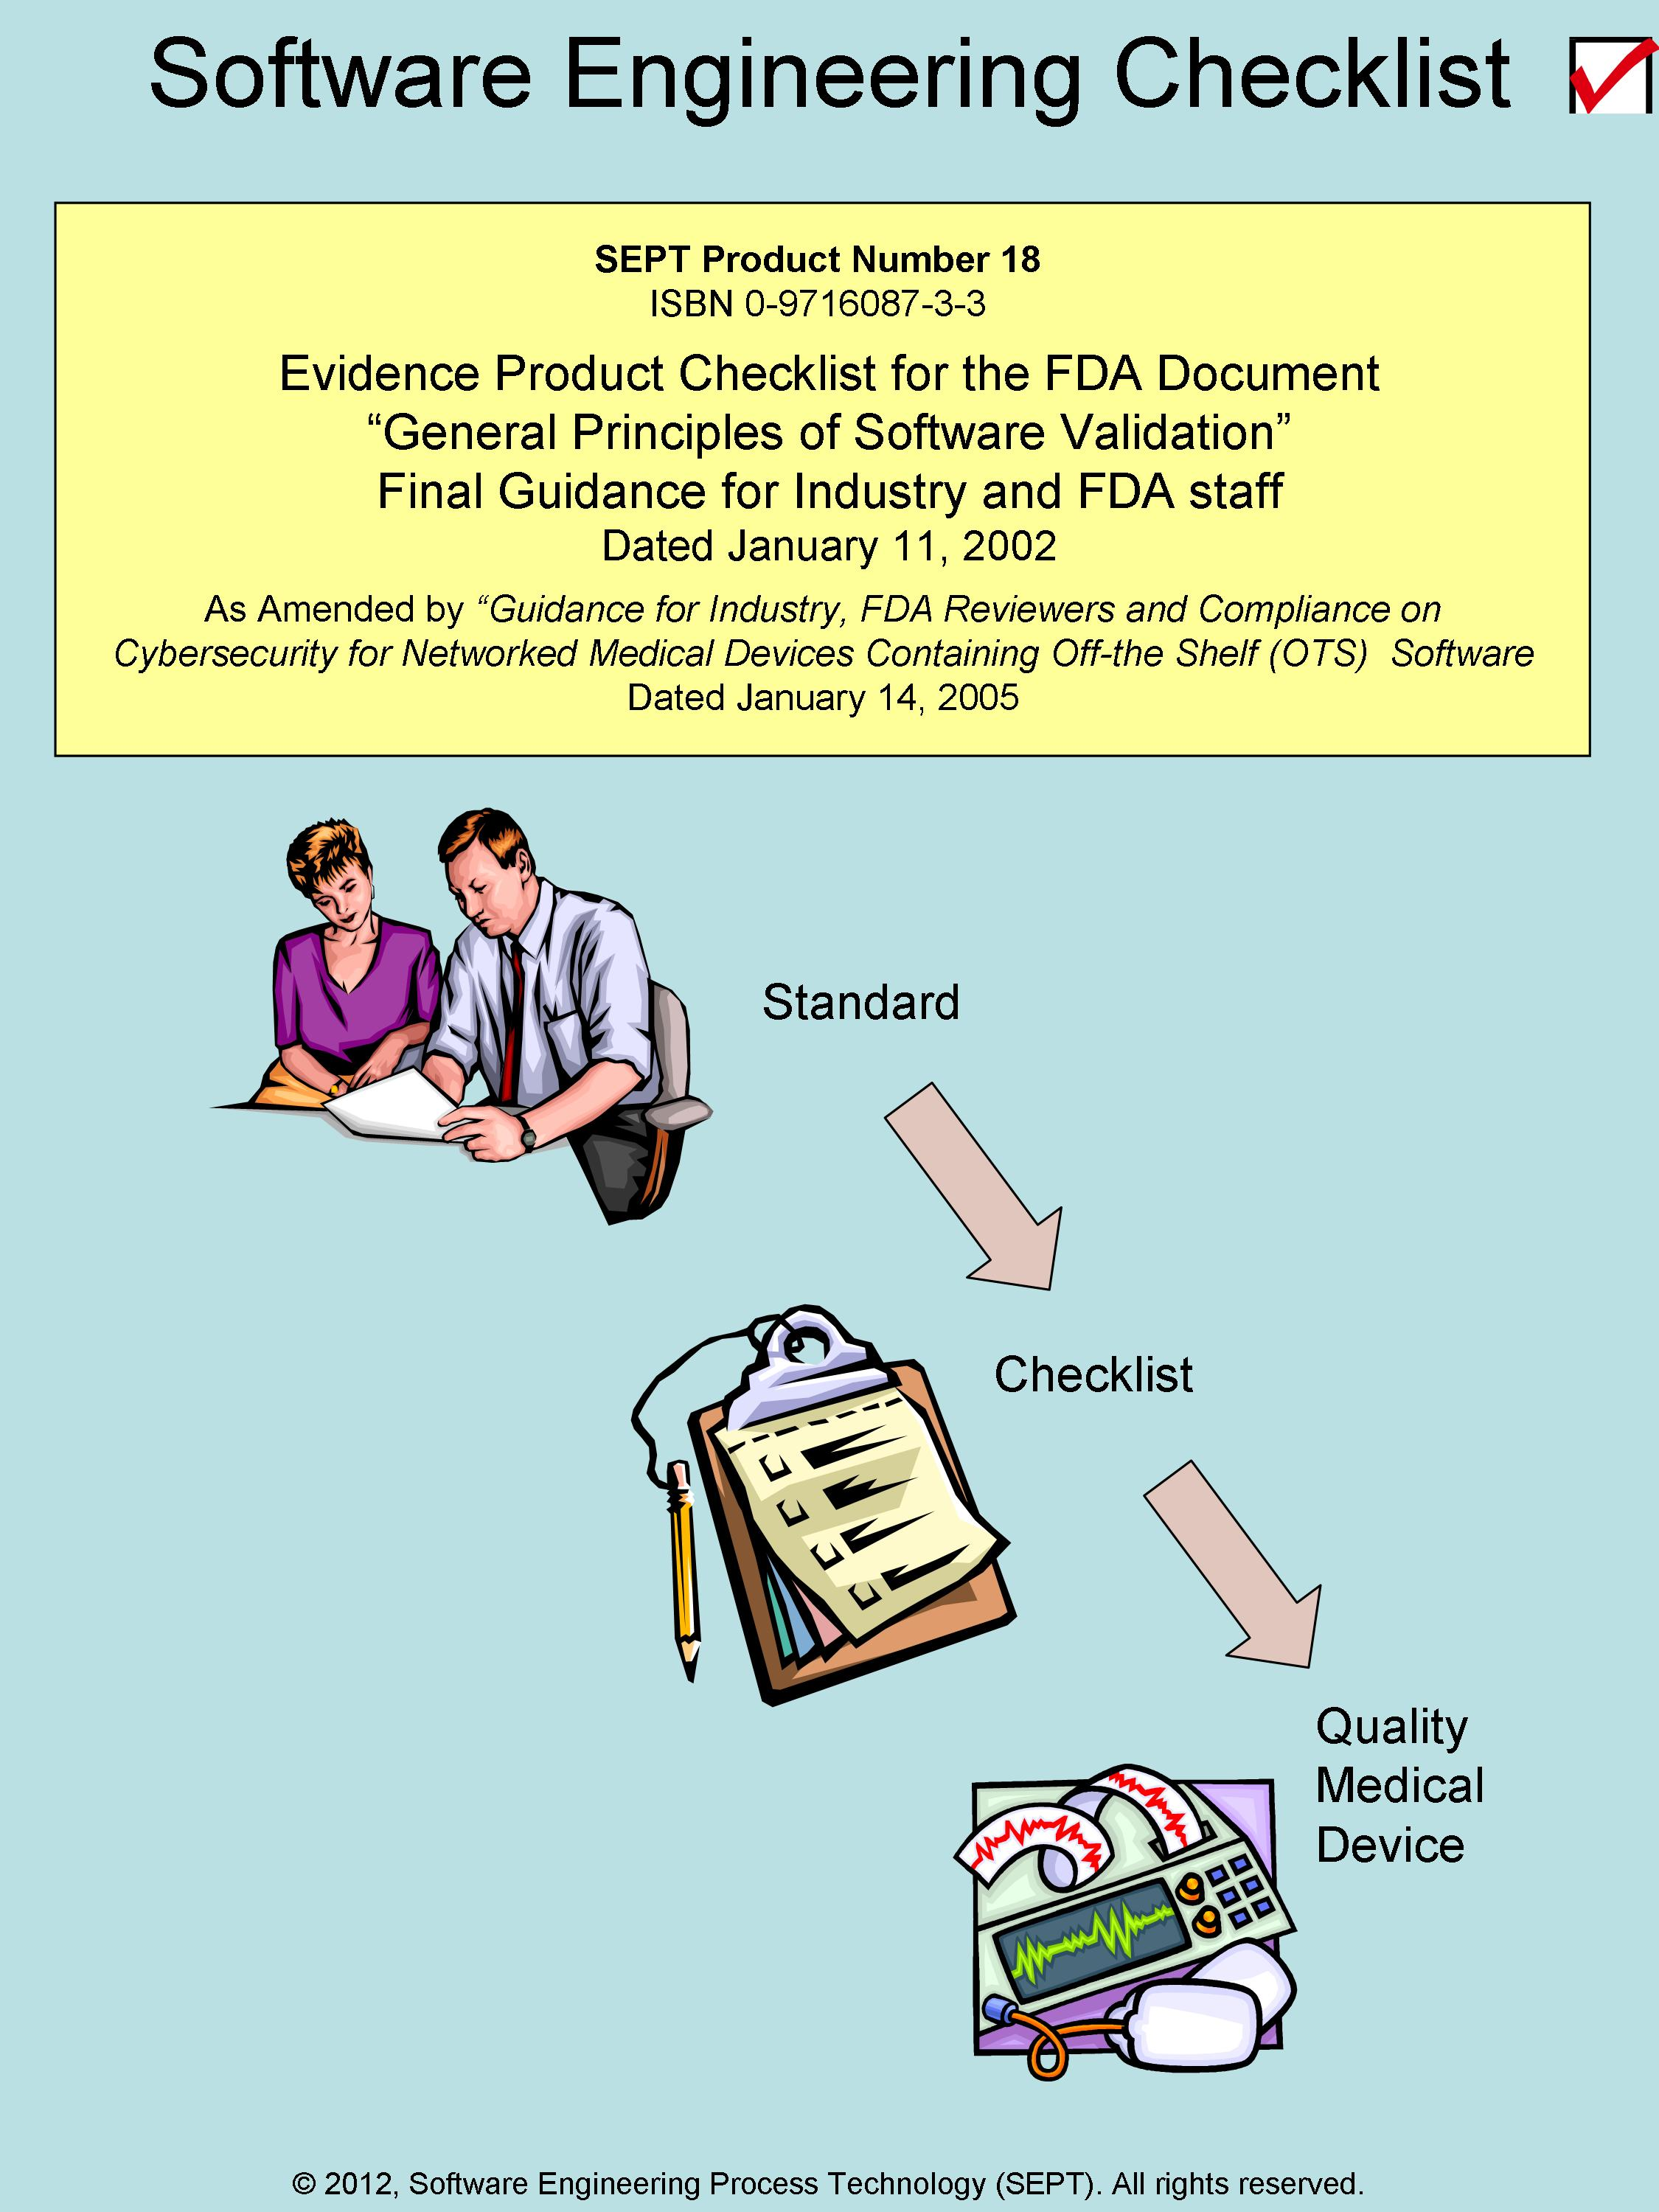 FDA, General Principles of Software Validation Final Guidance for Industry and FDA Staff (Release date January 11, 2002)